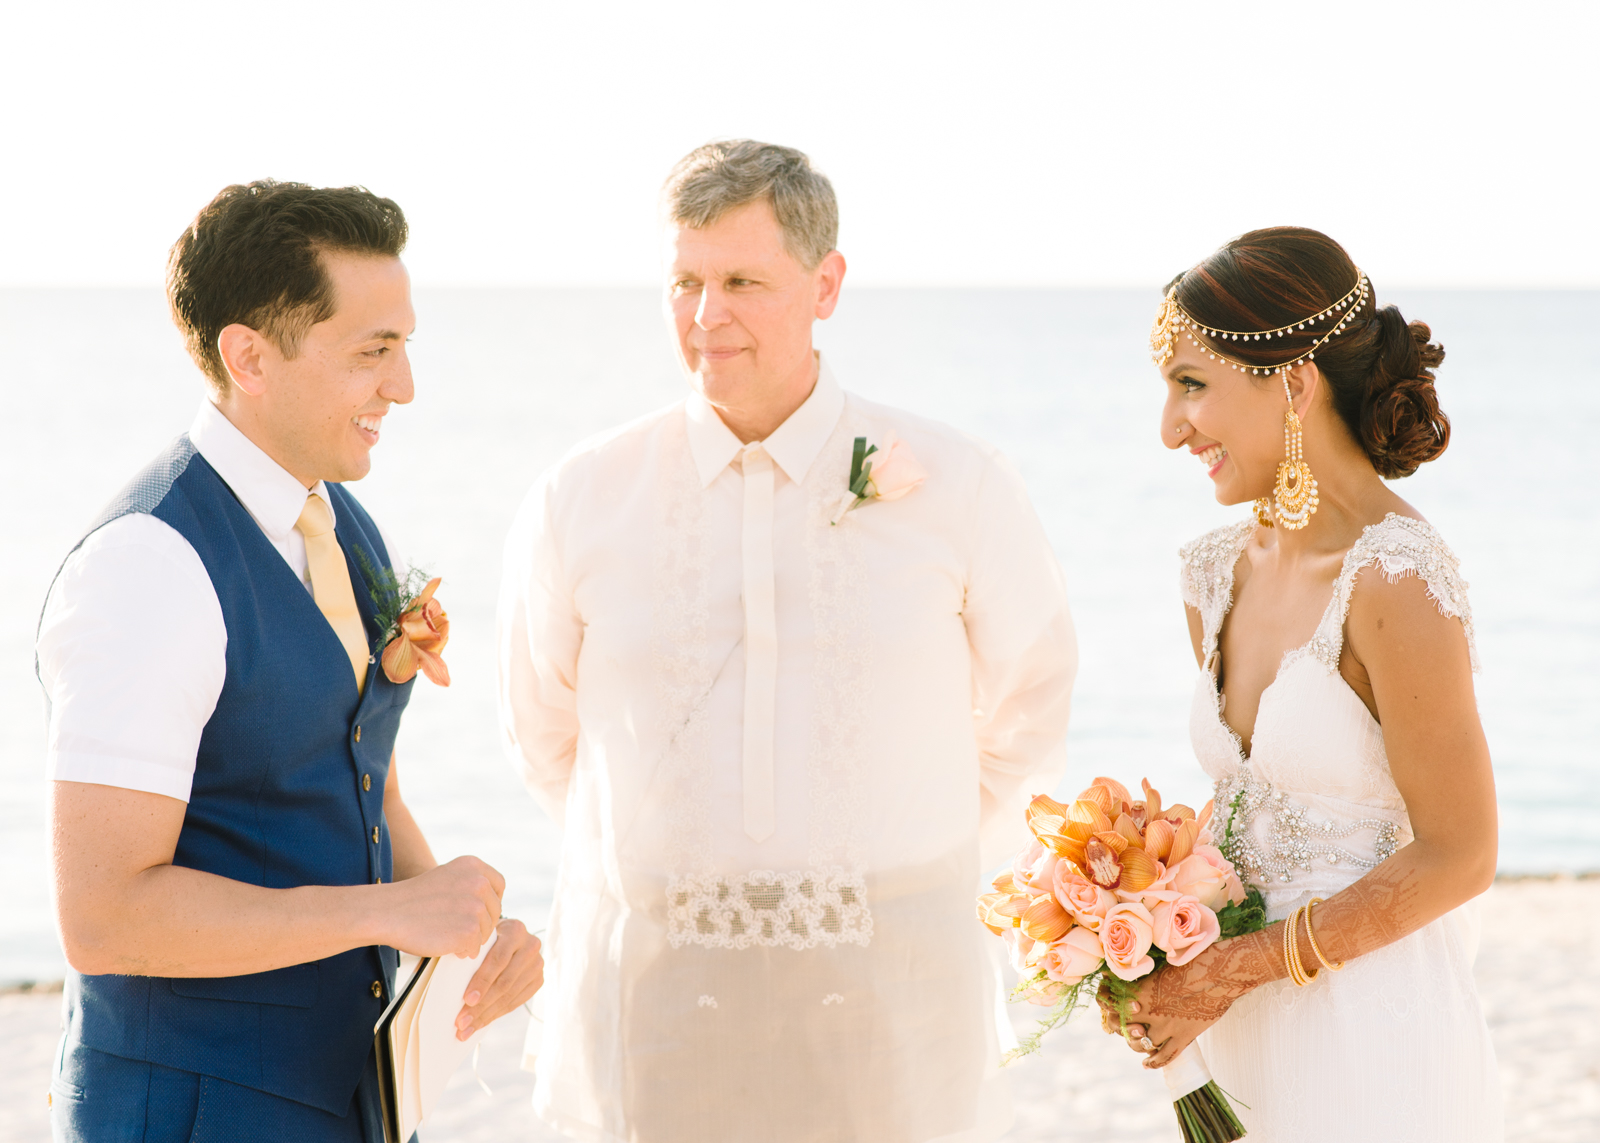 tara mcmullen photography amsterdam manor hotel wedding in aruba best wedding venue in aruba destination wedding photographer aruba indian wedding in aruba-023